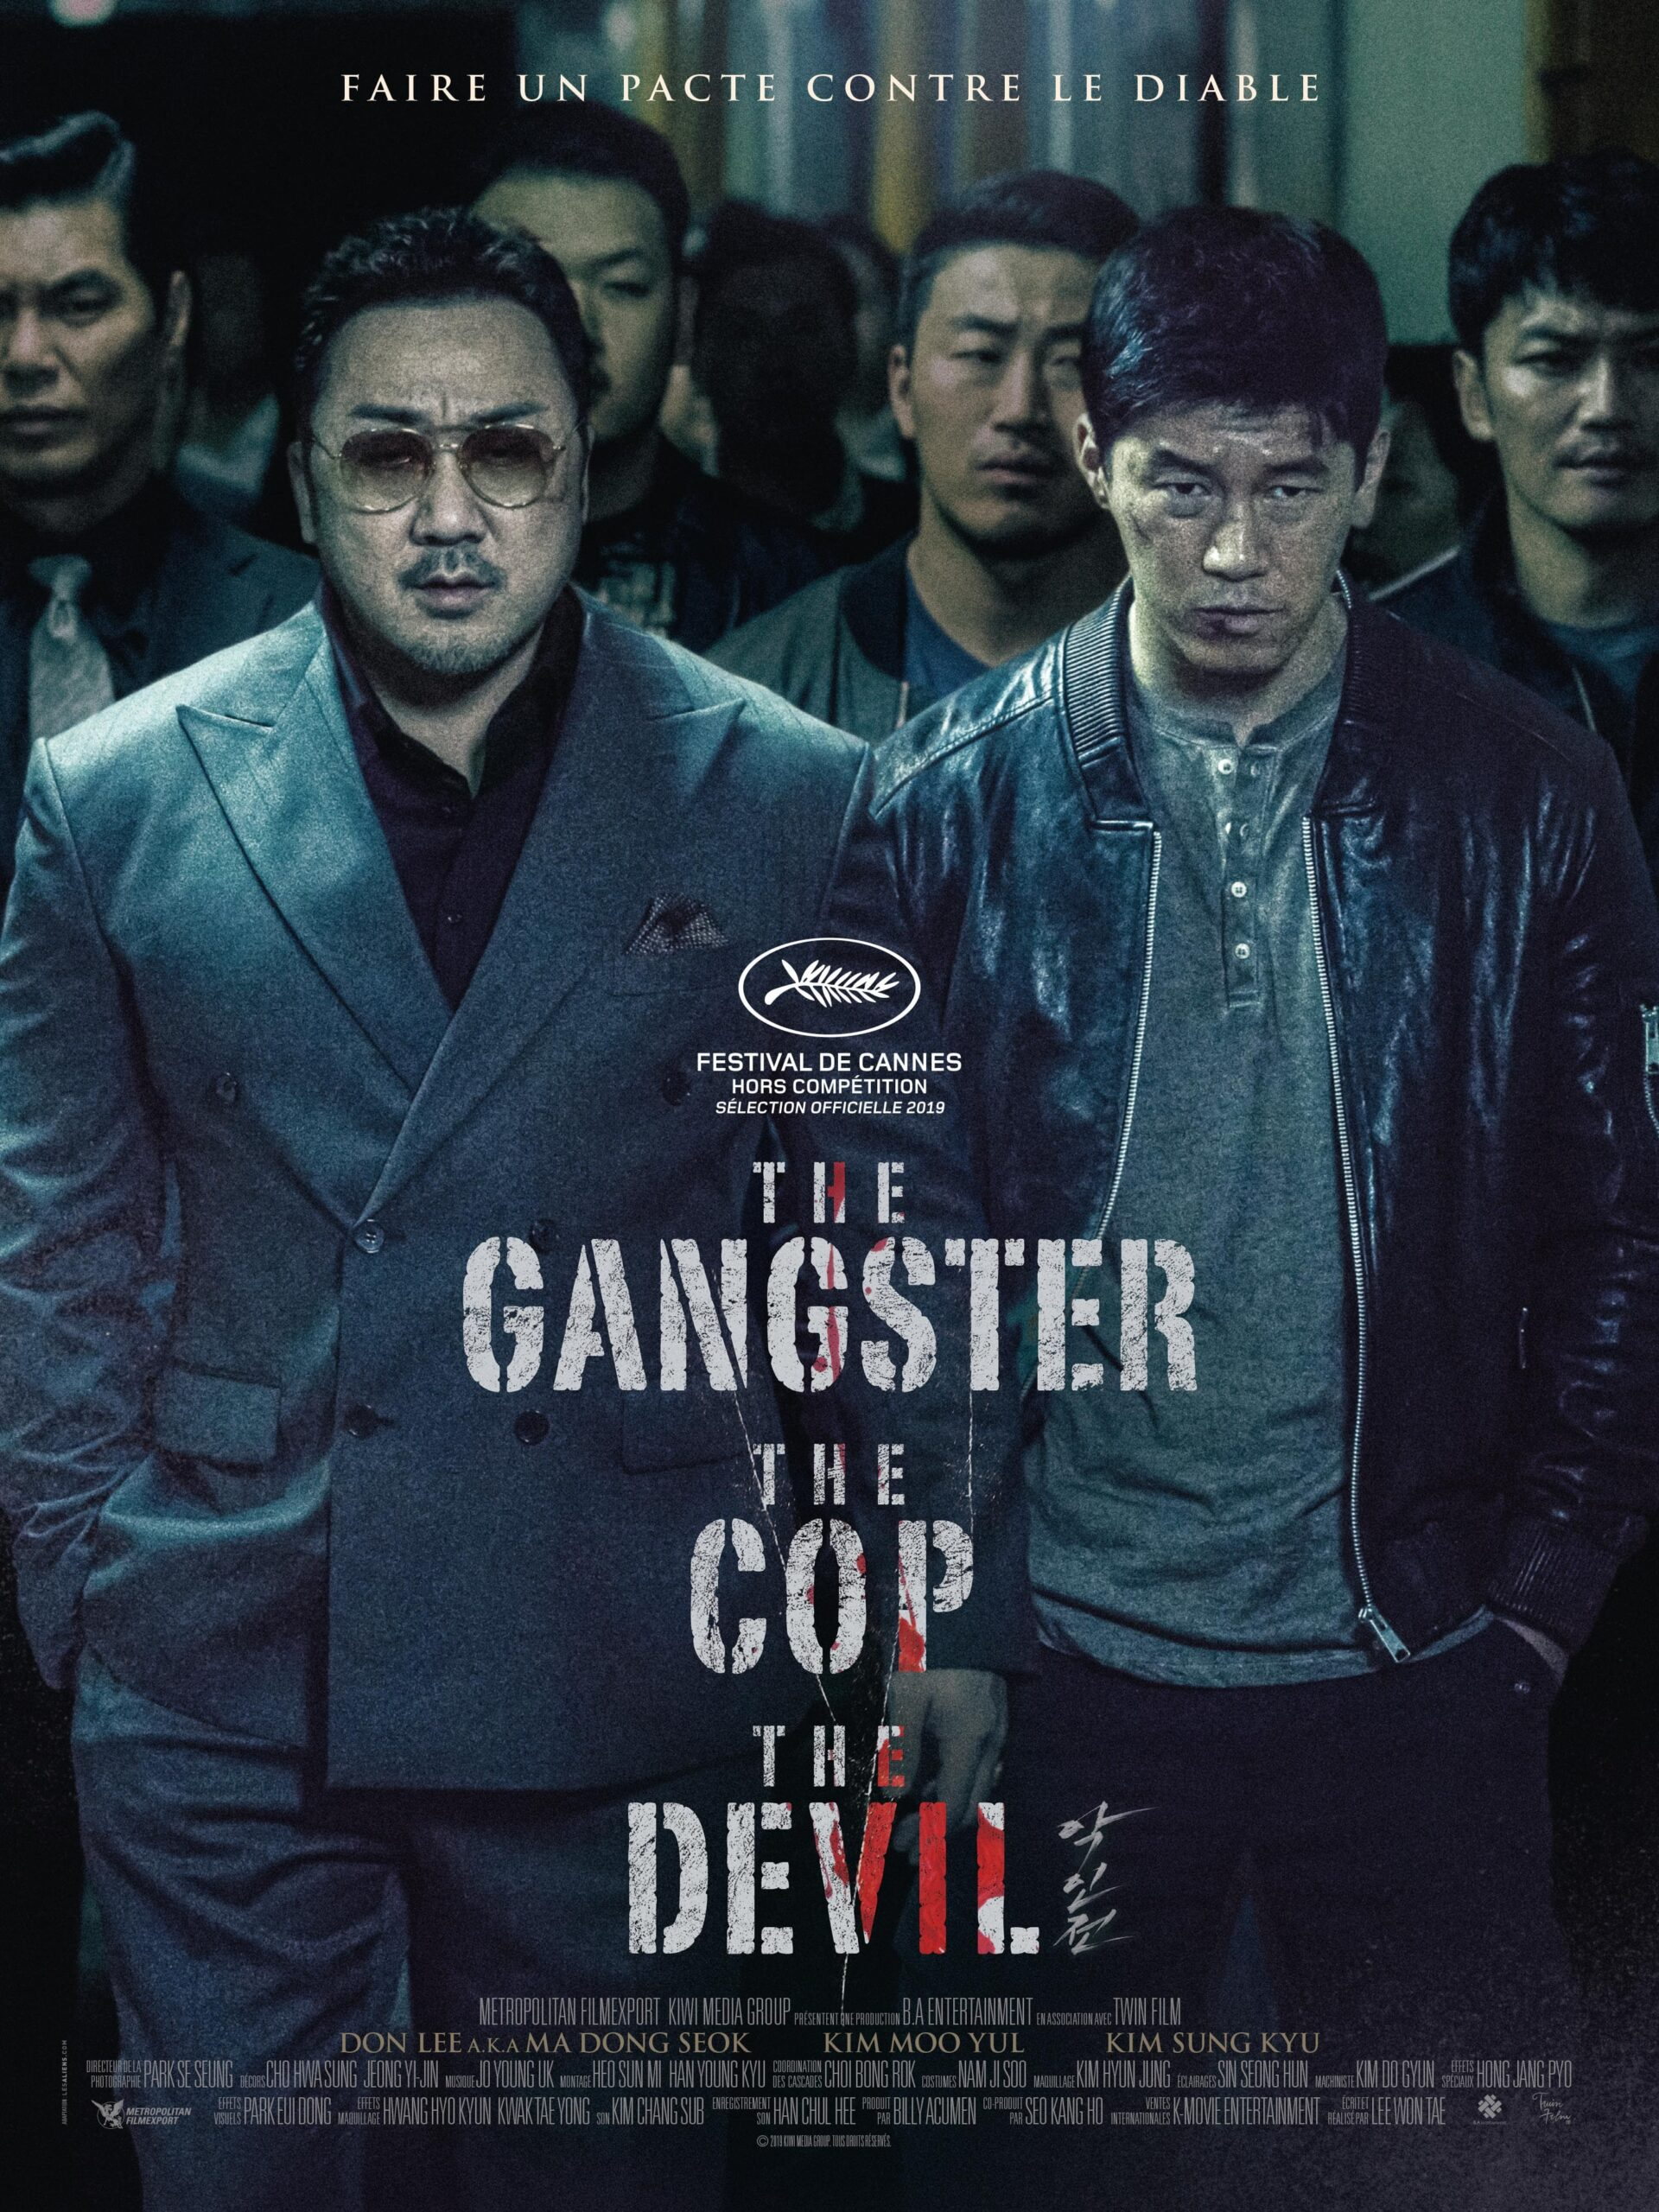 ดูหนัง the gangster the cop the devil 2019